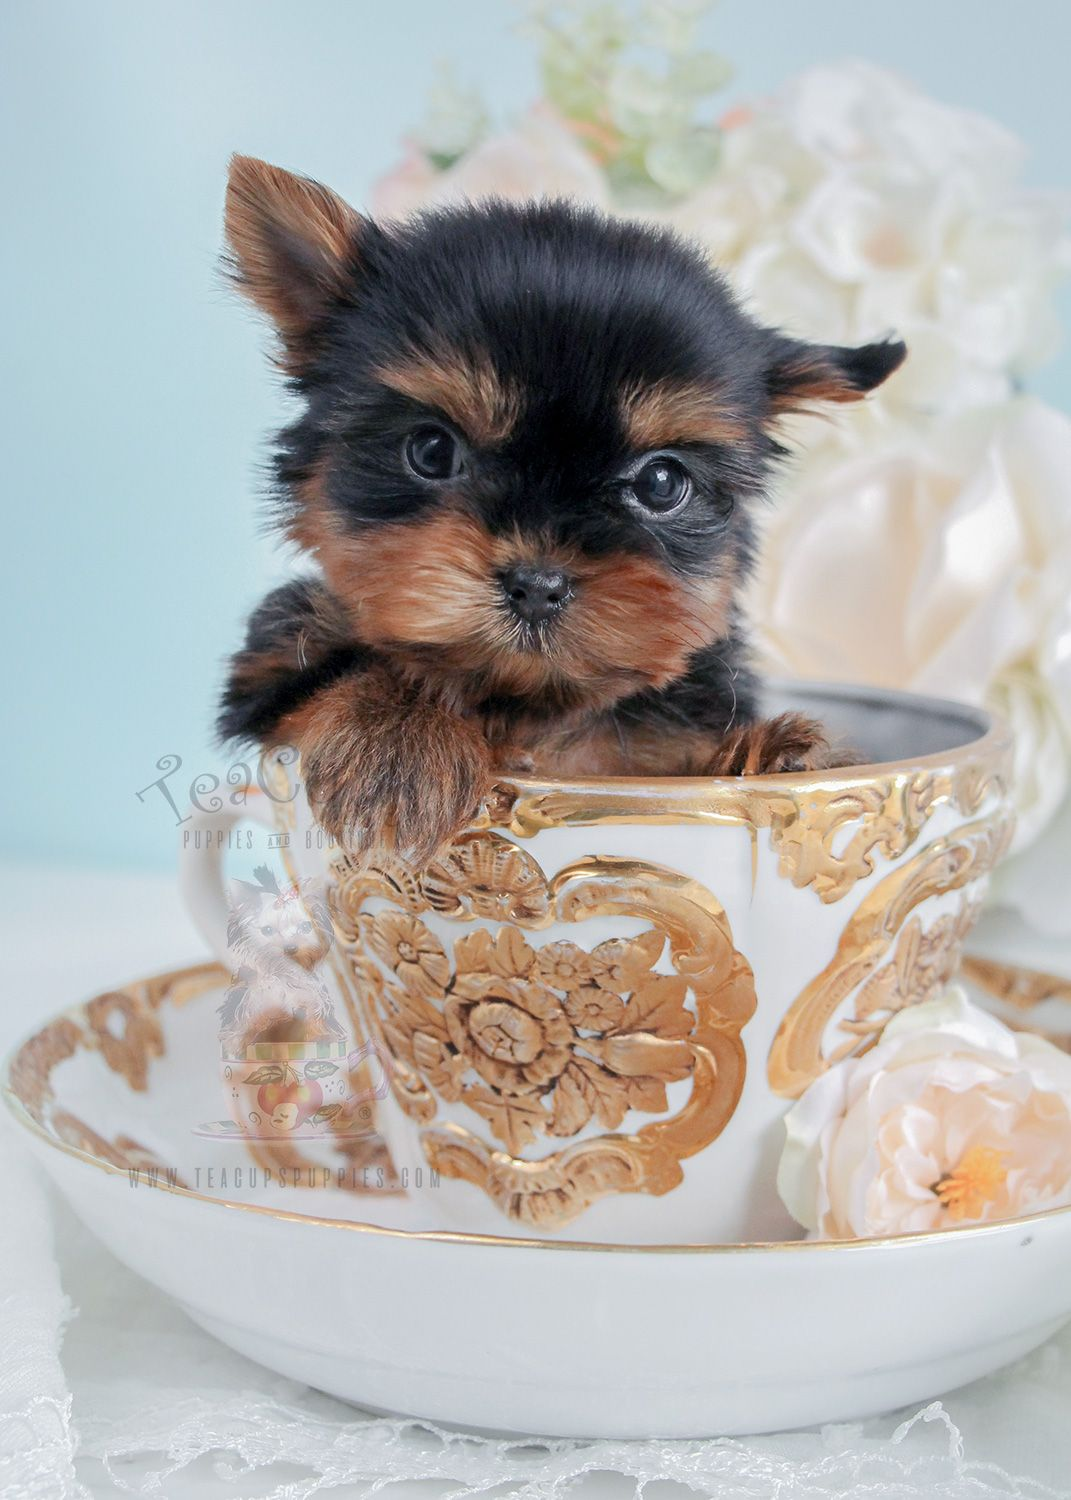 Treat Your Pet Right With These Dog Care Tips Yorkie